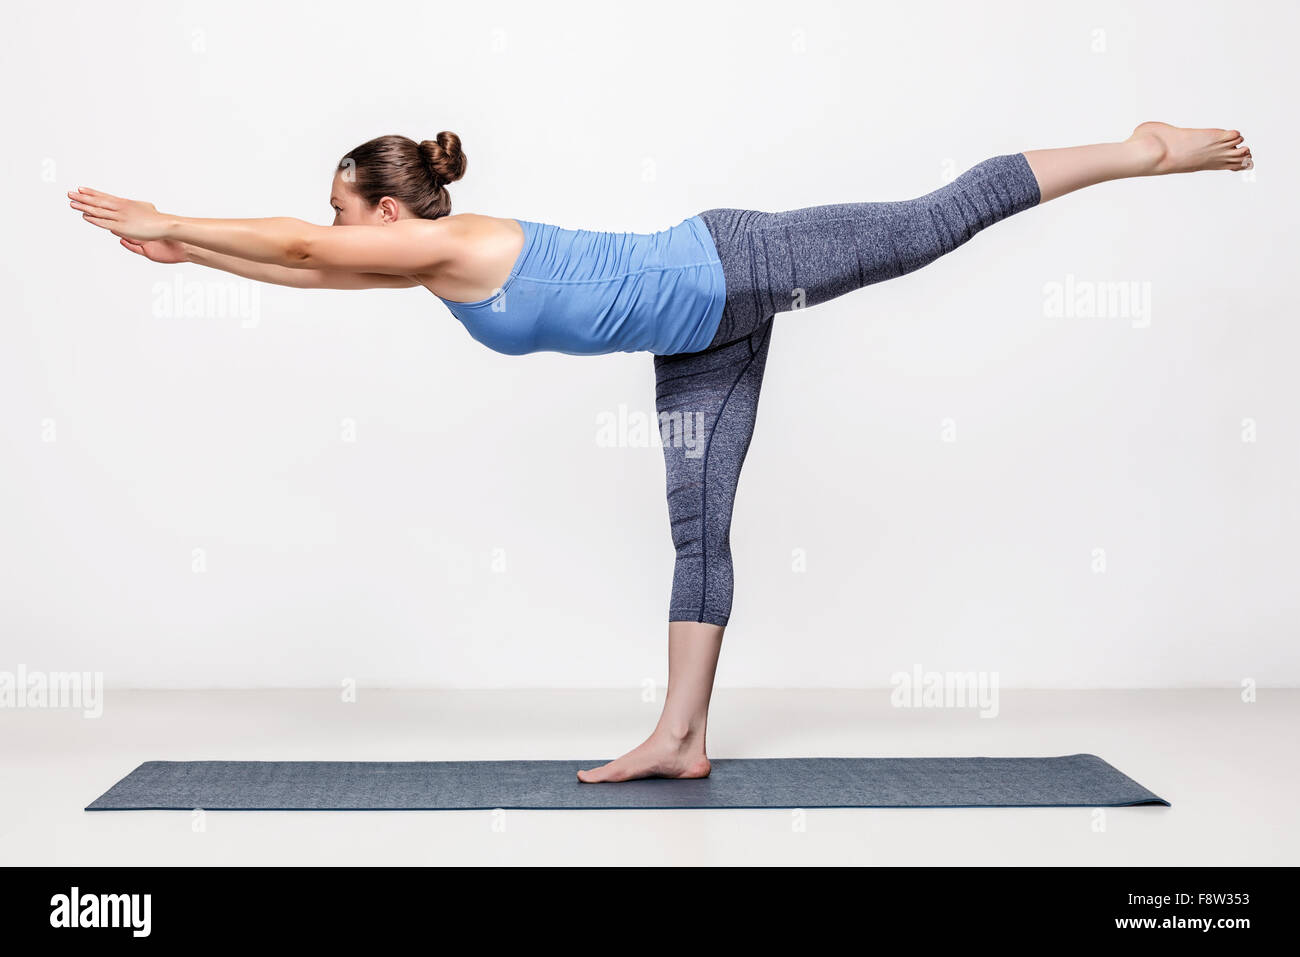 Sporty woman practices yoga asana - Stock Image